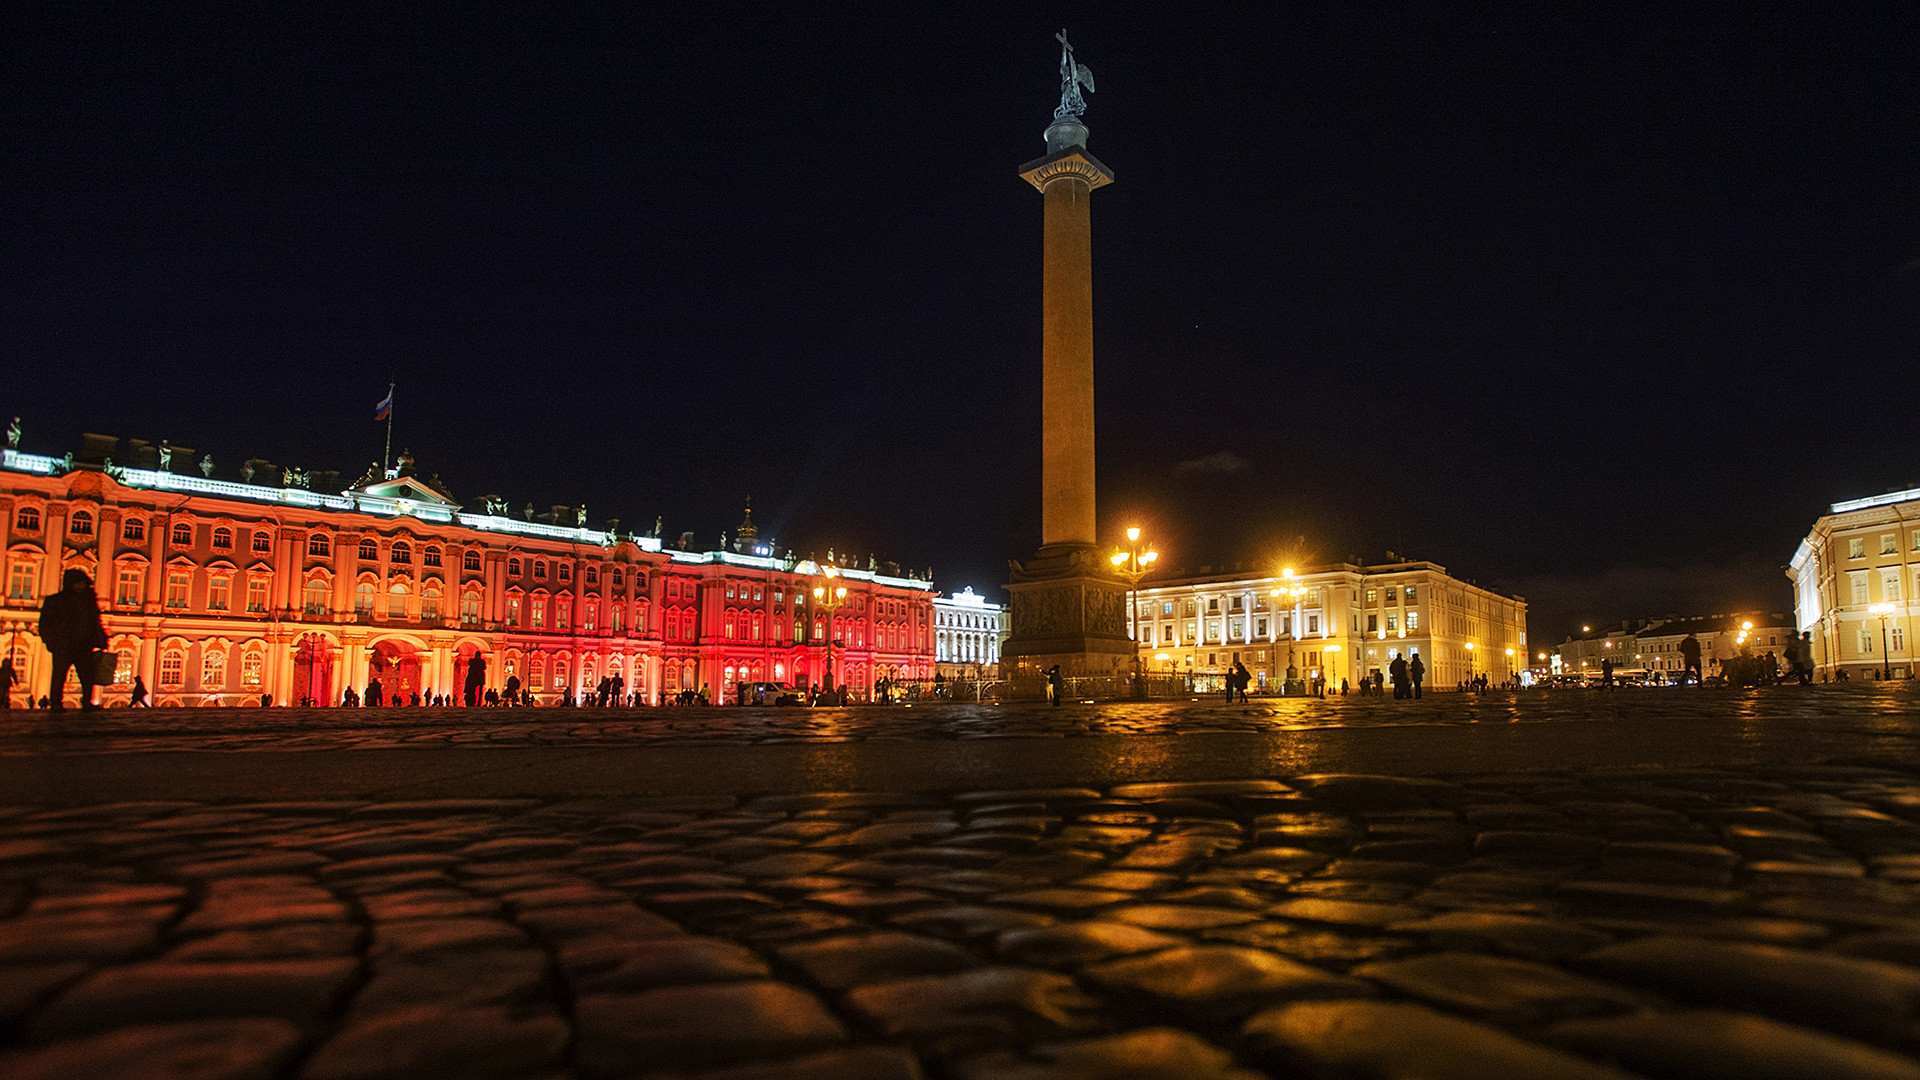 The Storming of the Winter Palace light show in St. Petersburg.